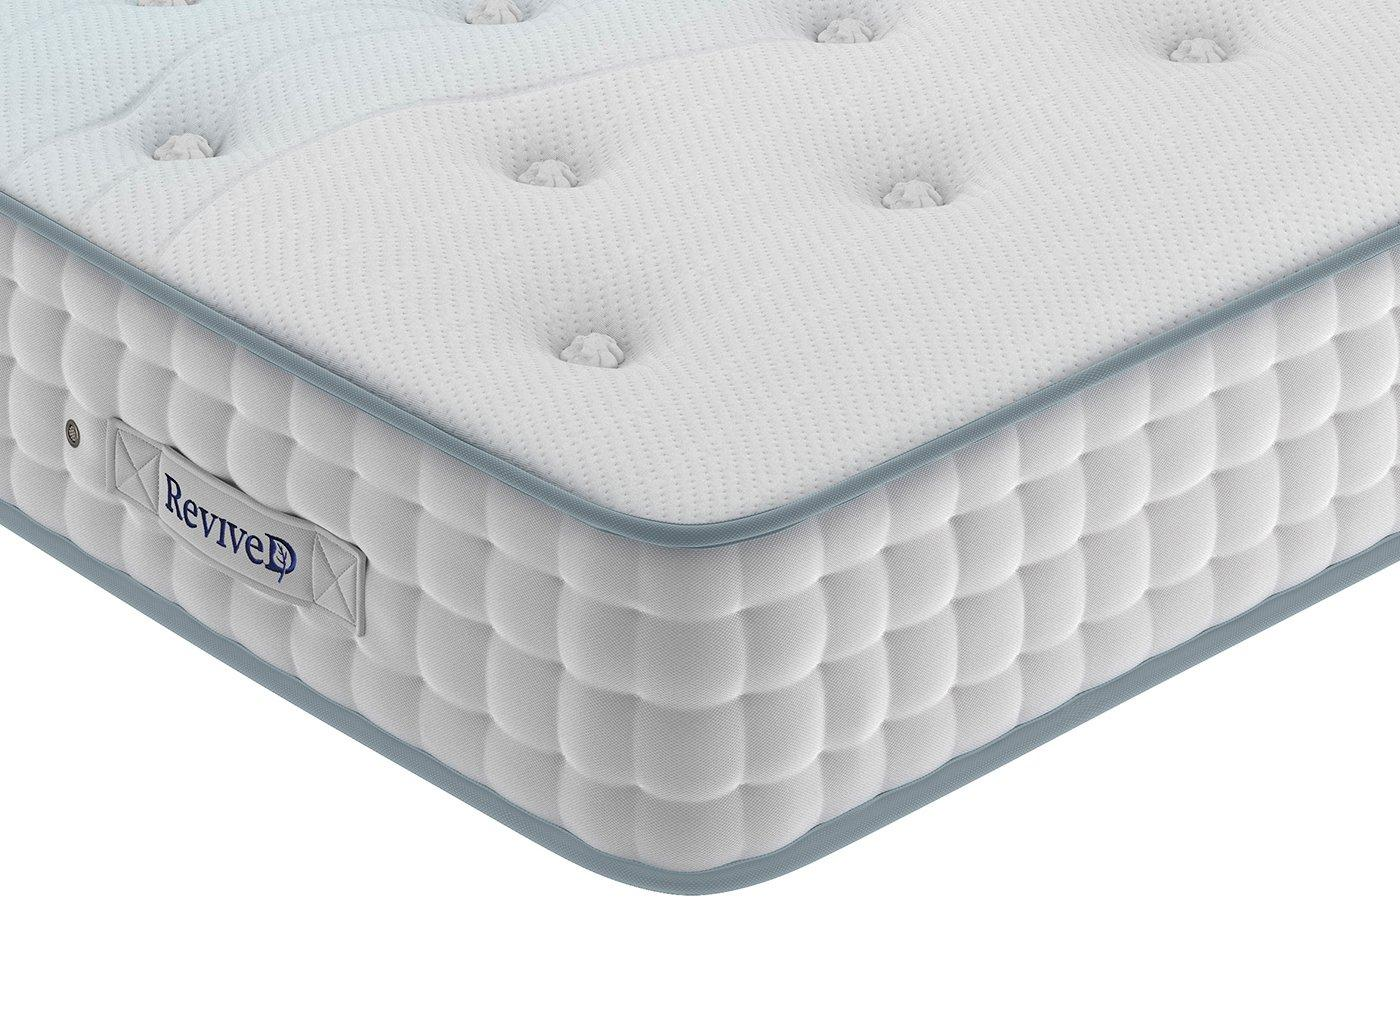 revived-marina-pocket-sprung-mattress